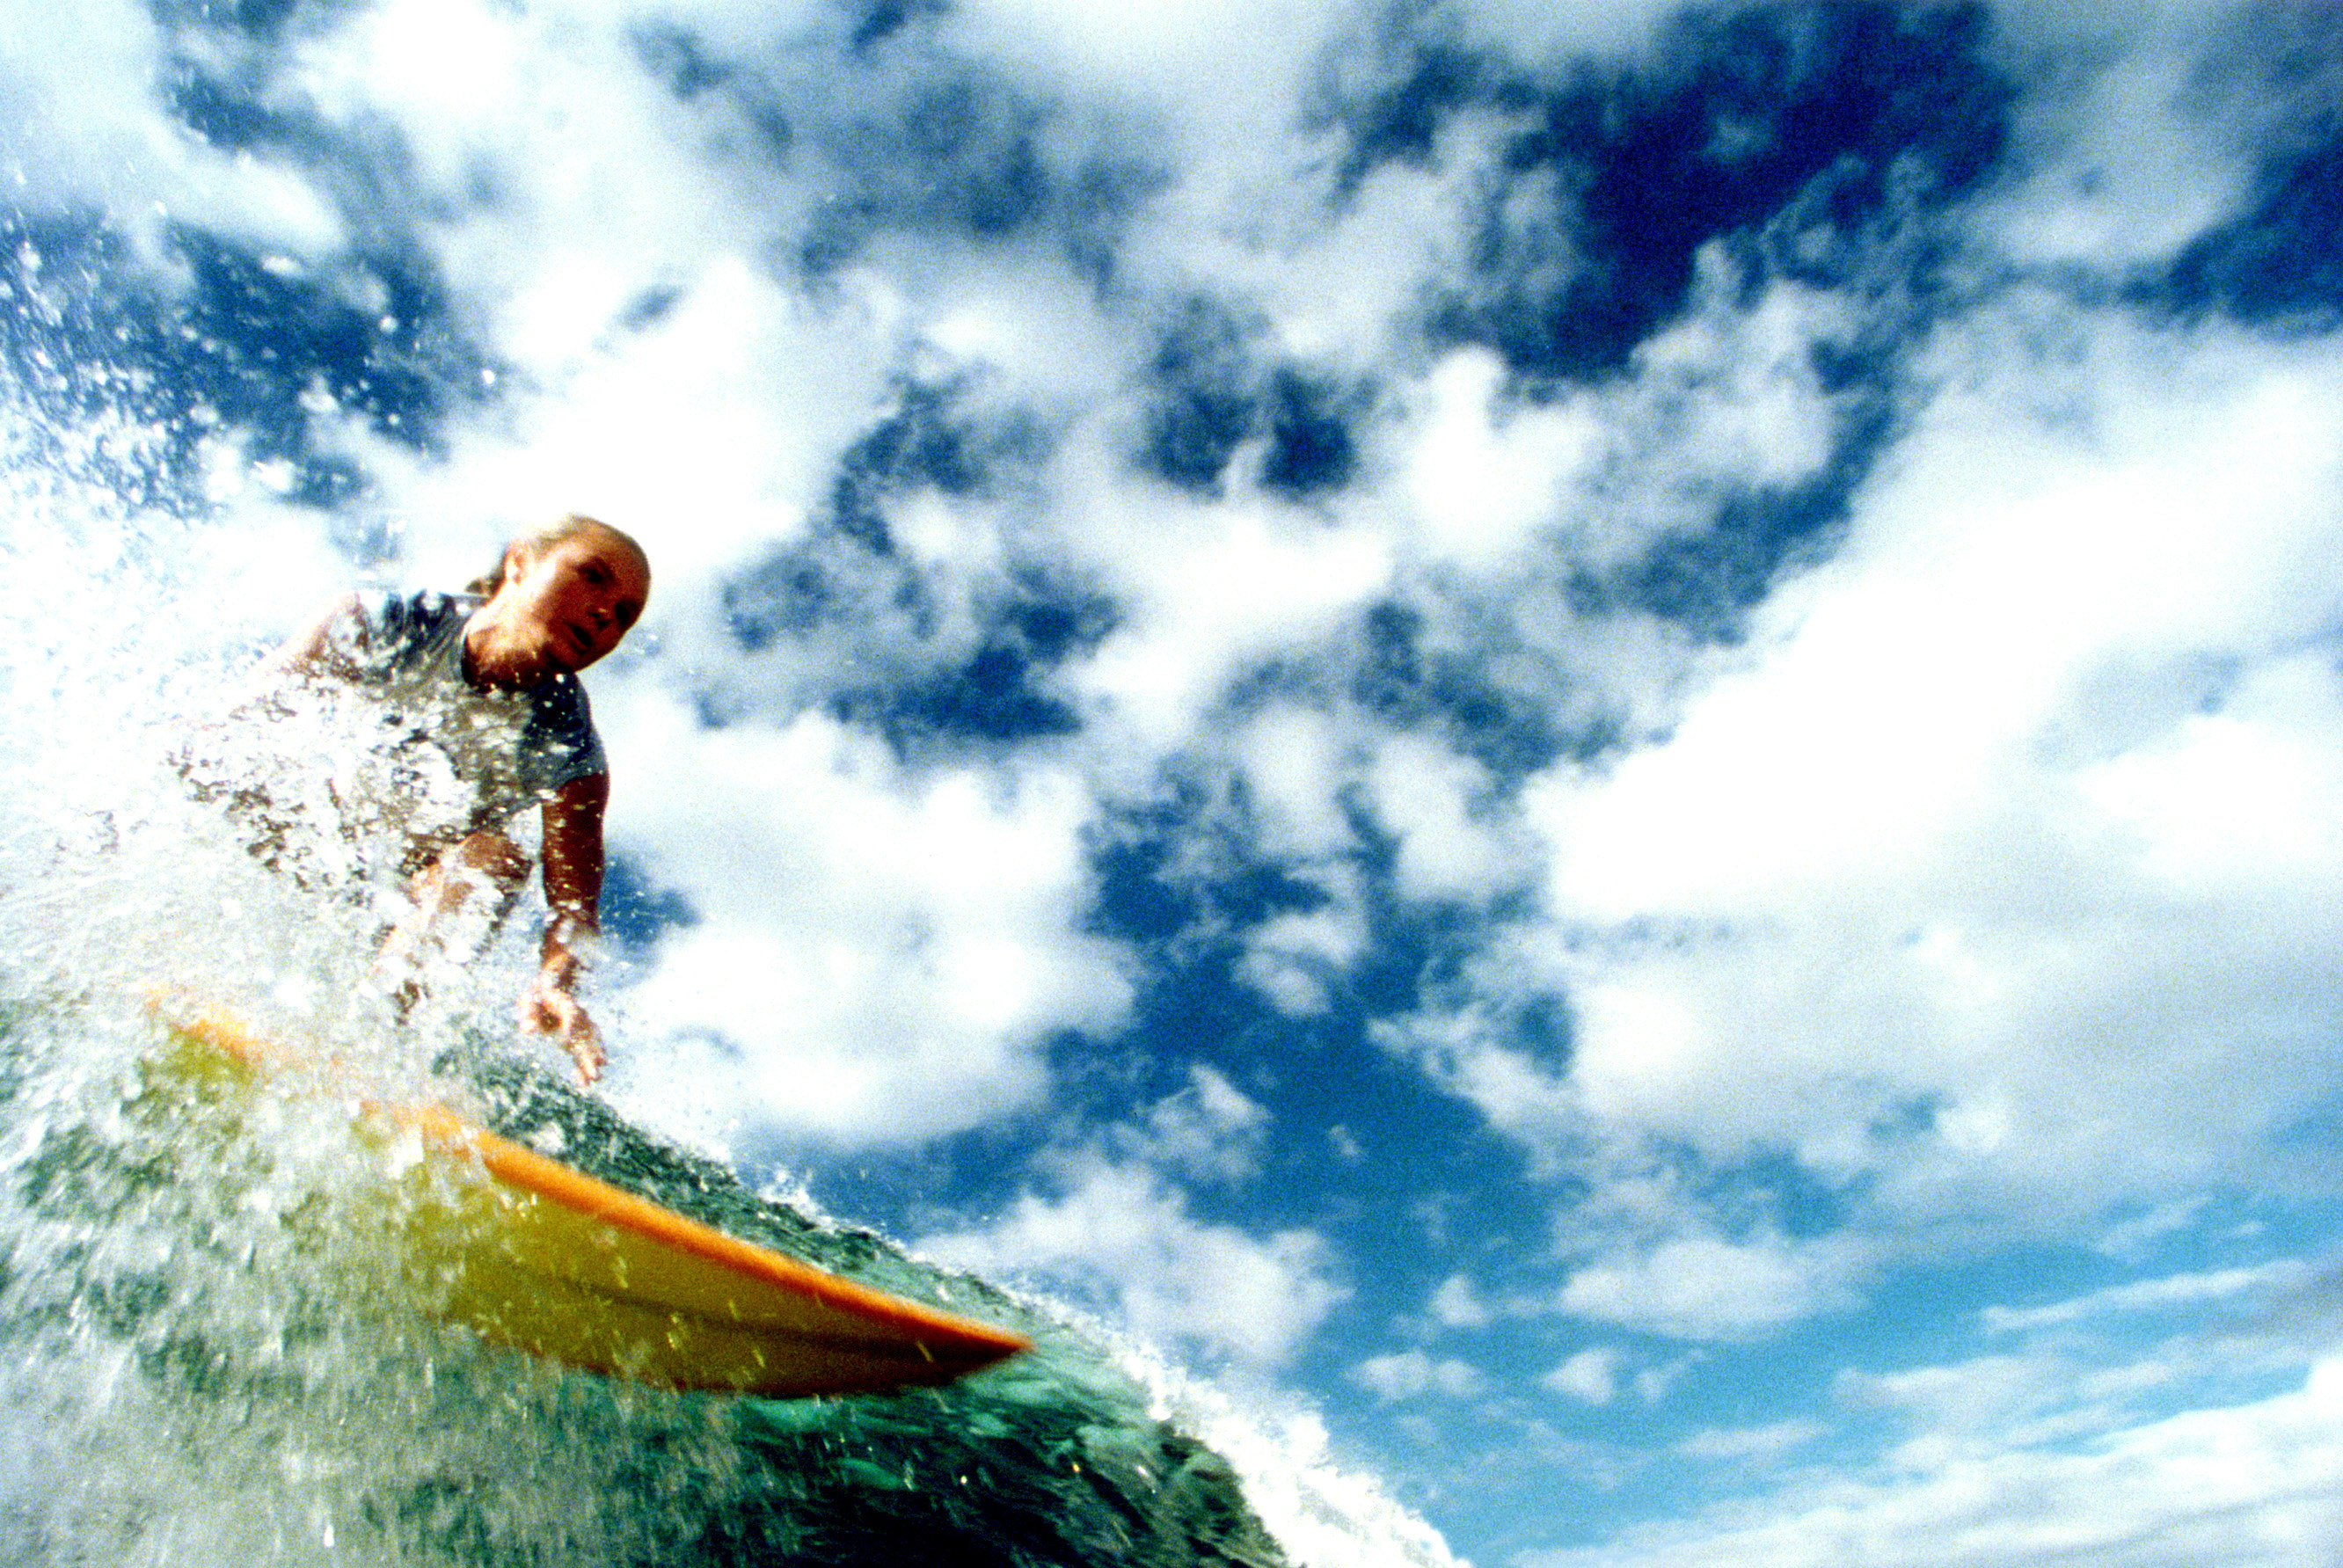 Kate Bosworth in the movie blue crush